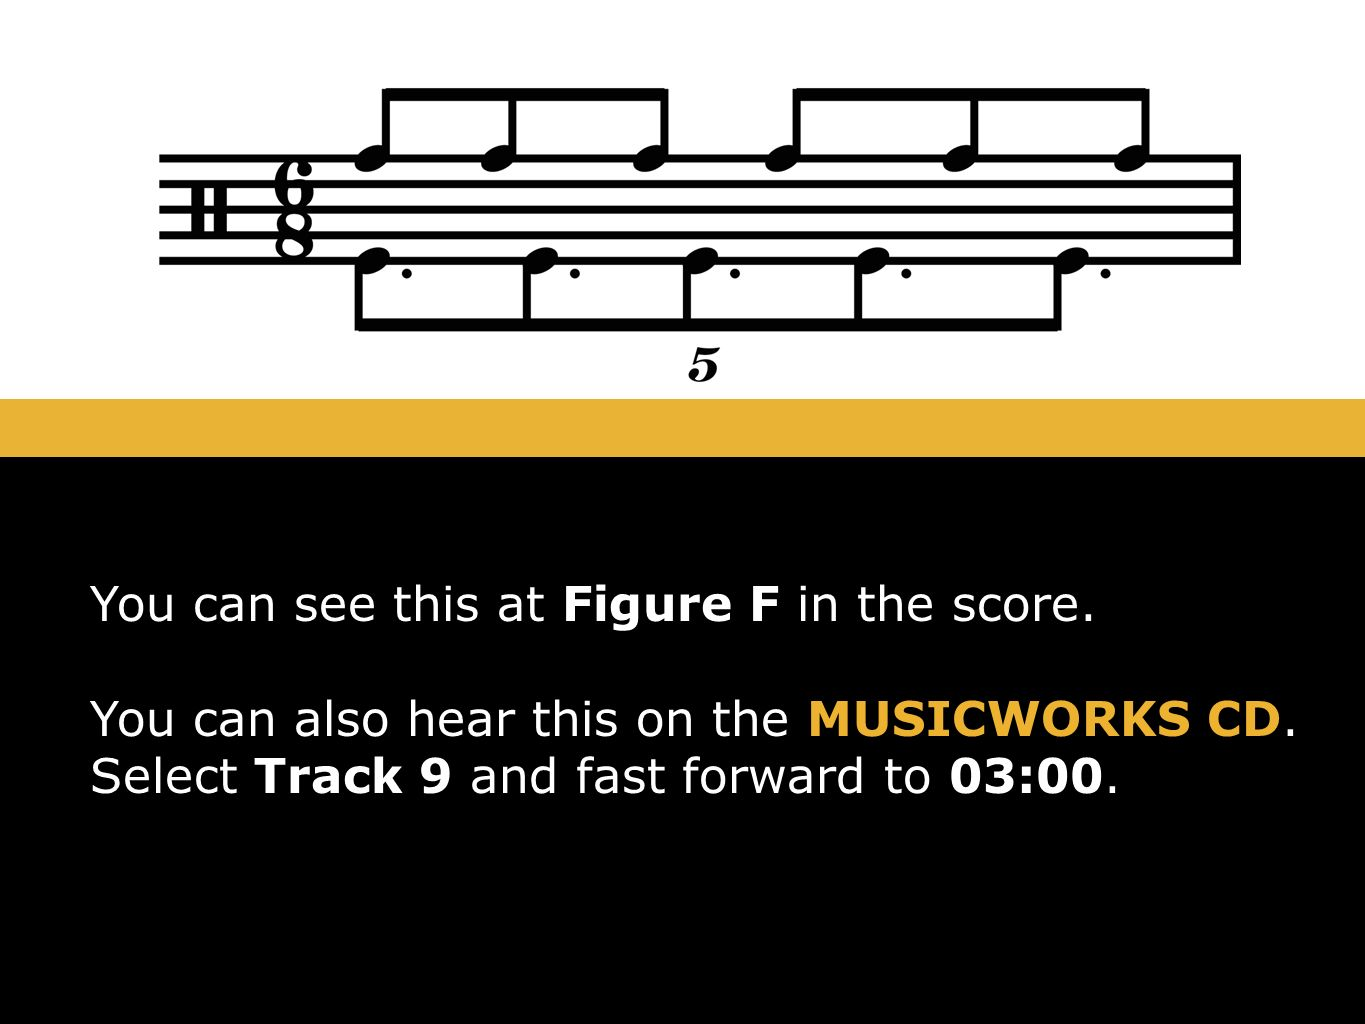 You can see this at Figure F in the score. You can also hear this on the MUSICWORKS CD. Select Track 9 and fast forward to 03:00.